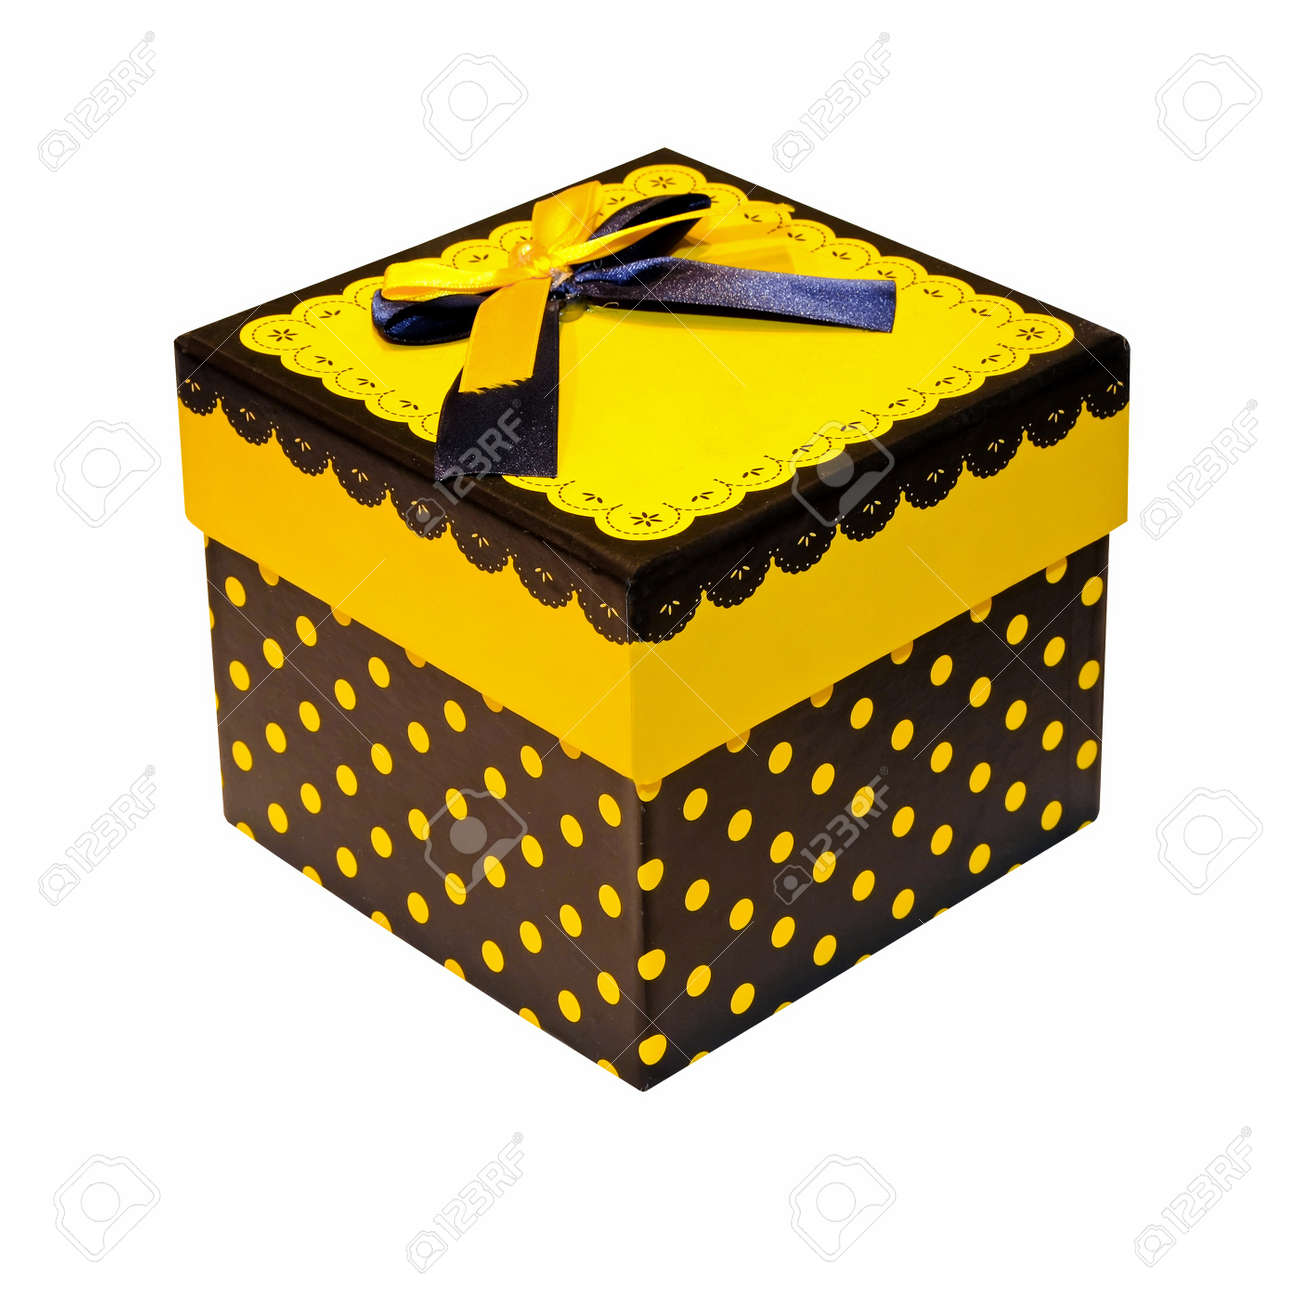 Decorative Yellow Gift Box Stock Photo, Picture And Royalty Free ...